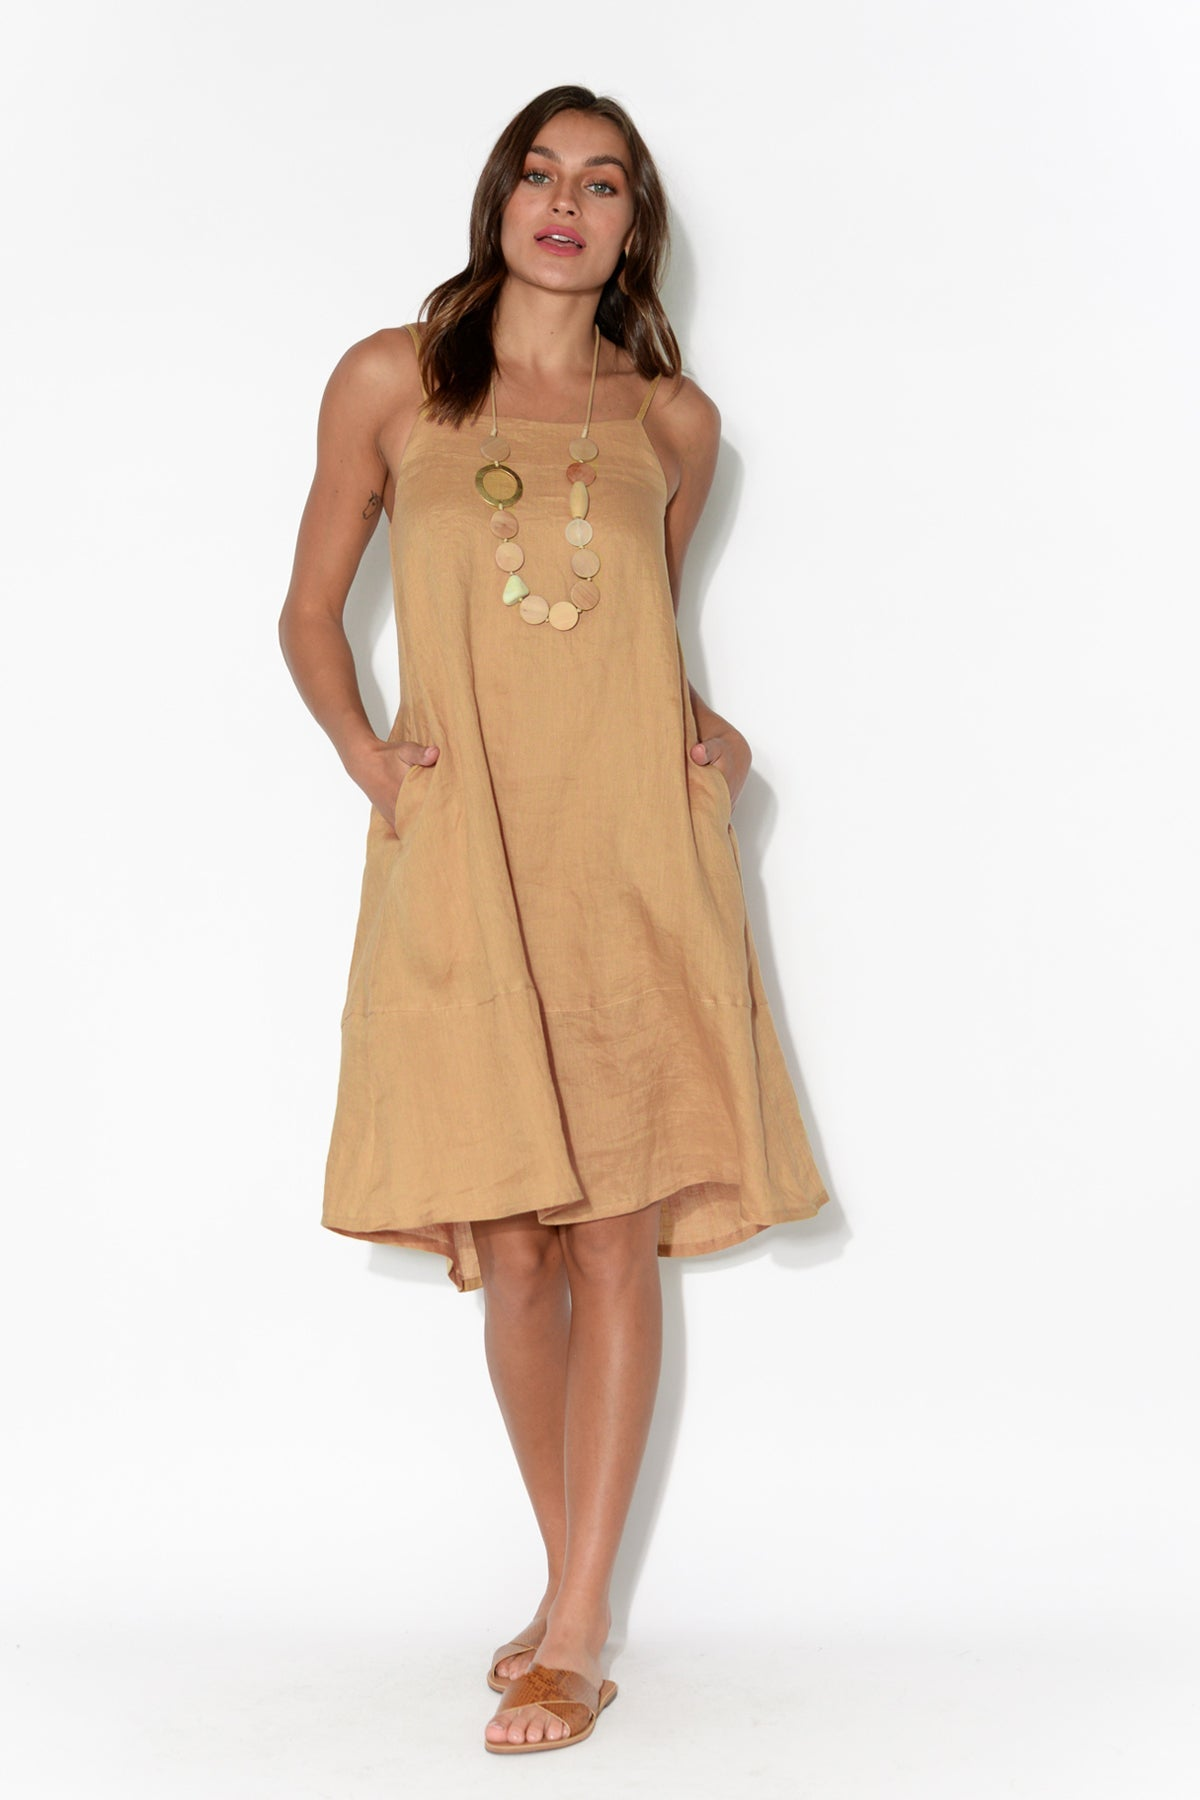 Tribu Tan Sleeveless Linen Dress